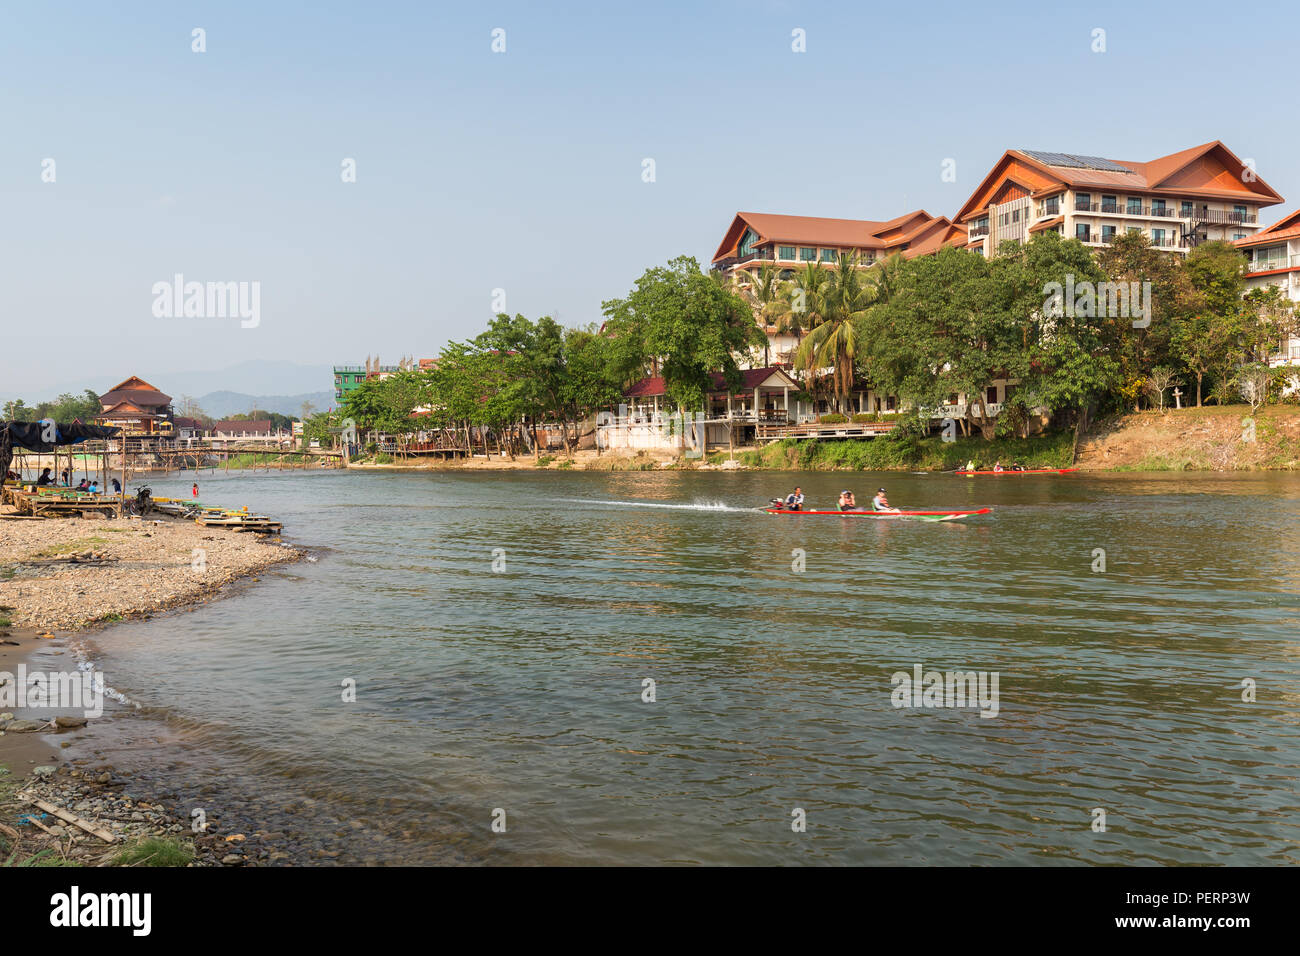 Few people and boats on the Nam Song River and hotels in Vang Vieng, Vientiane Province, Laos, on a sunny day. - Stock Image